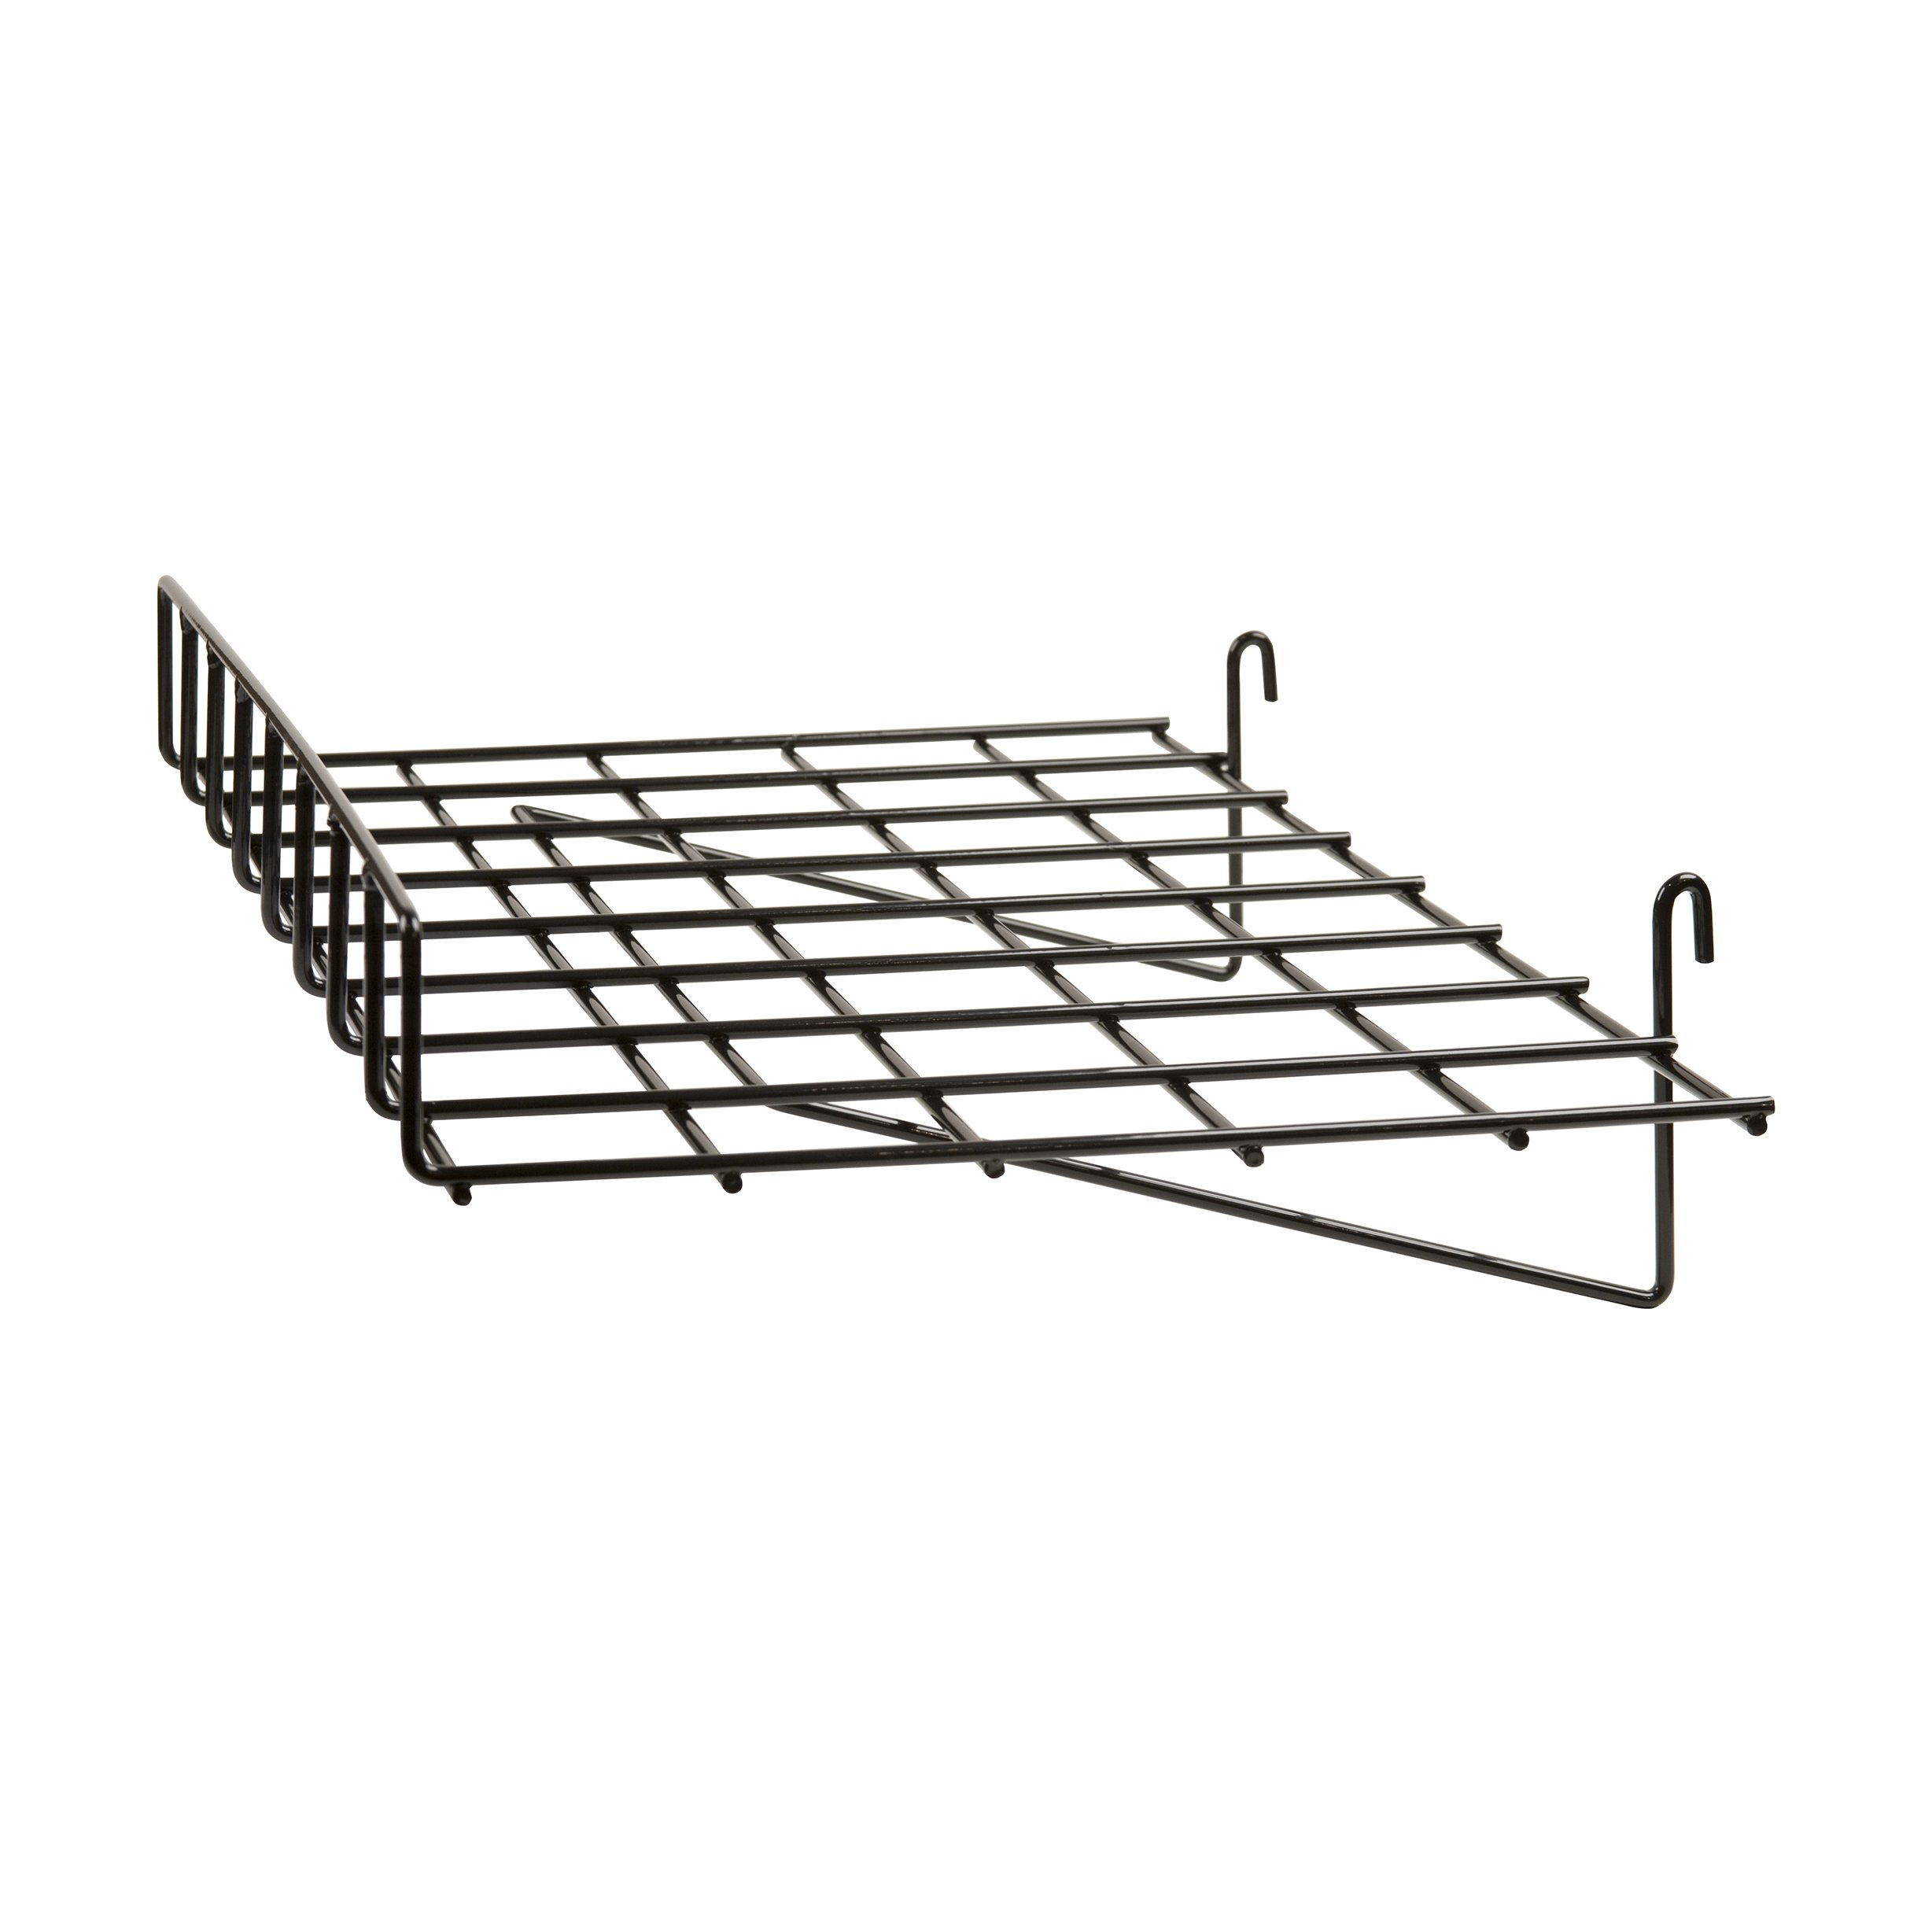 Econoco Straight Shelf with Front Lip, 24'' Length x 15'' Depth (Pack of 4)